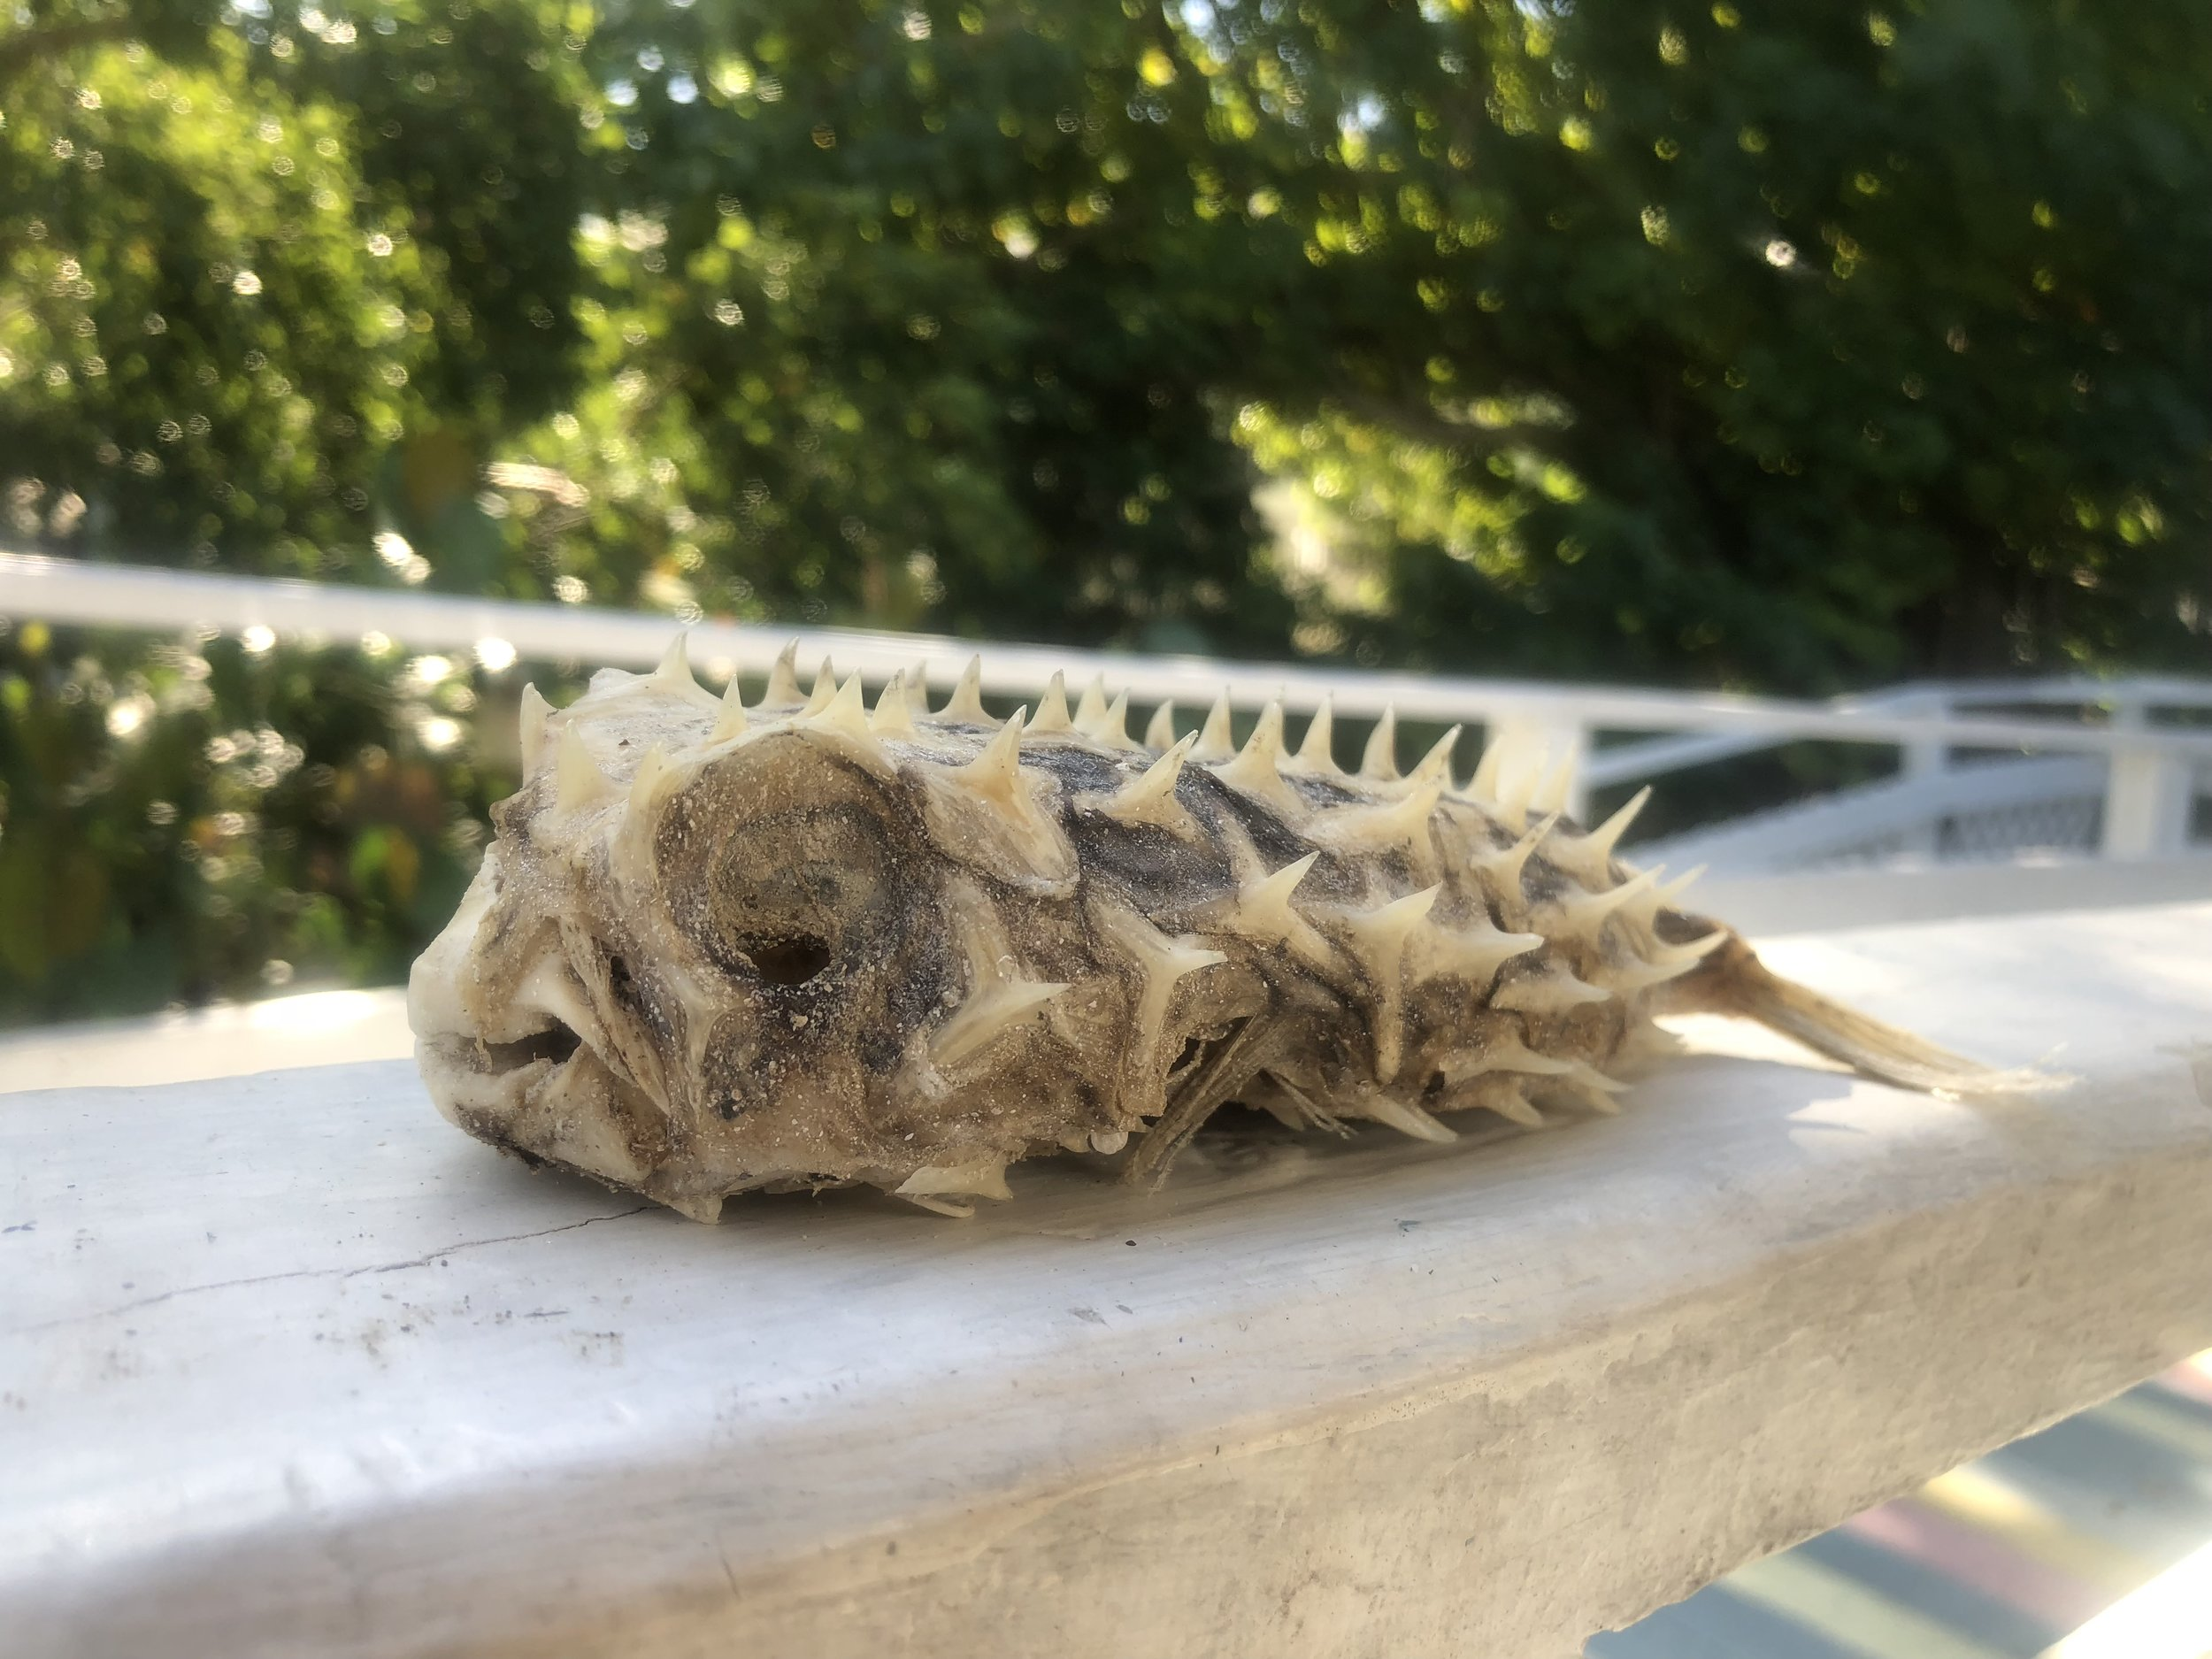 A dead, dried out striped burrfish.